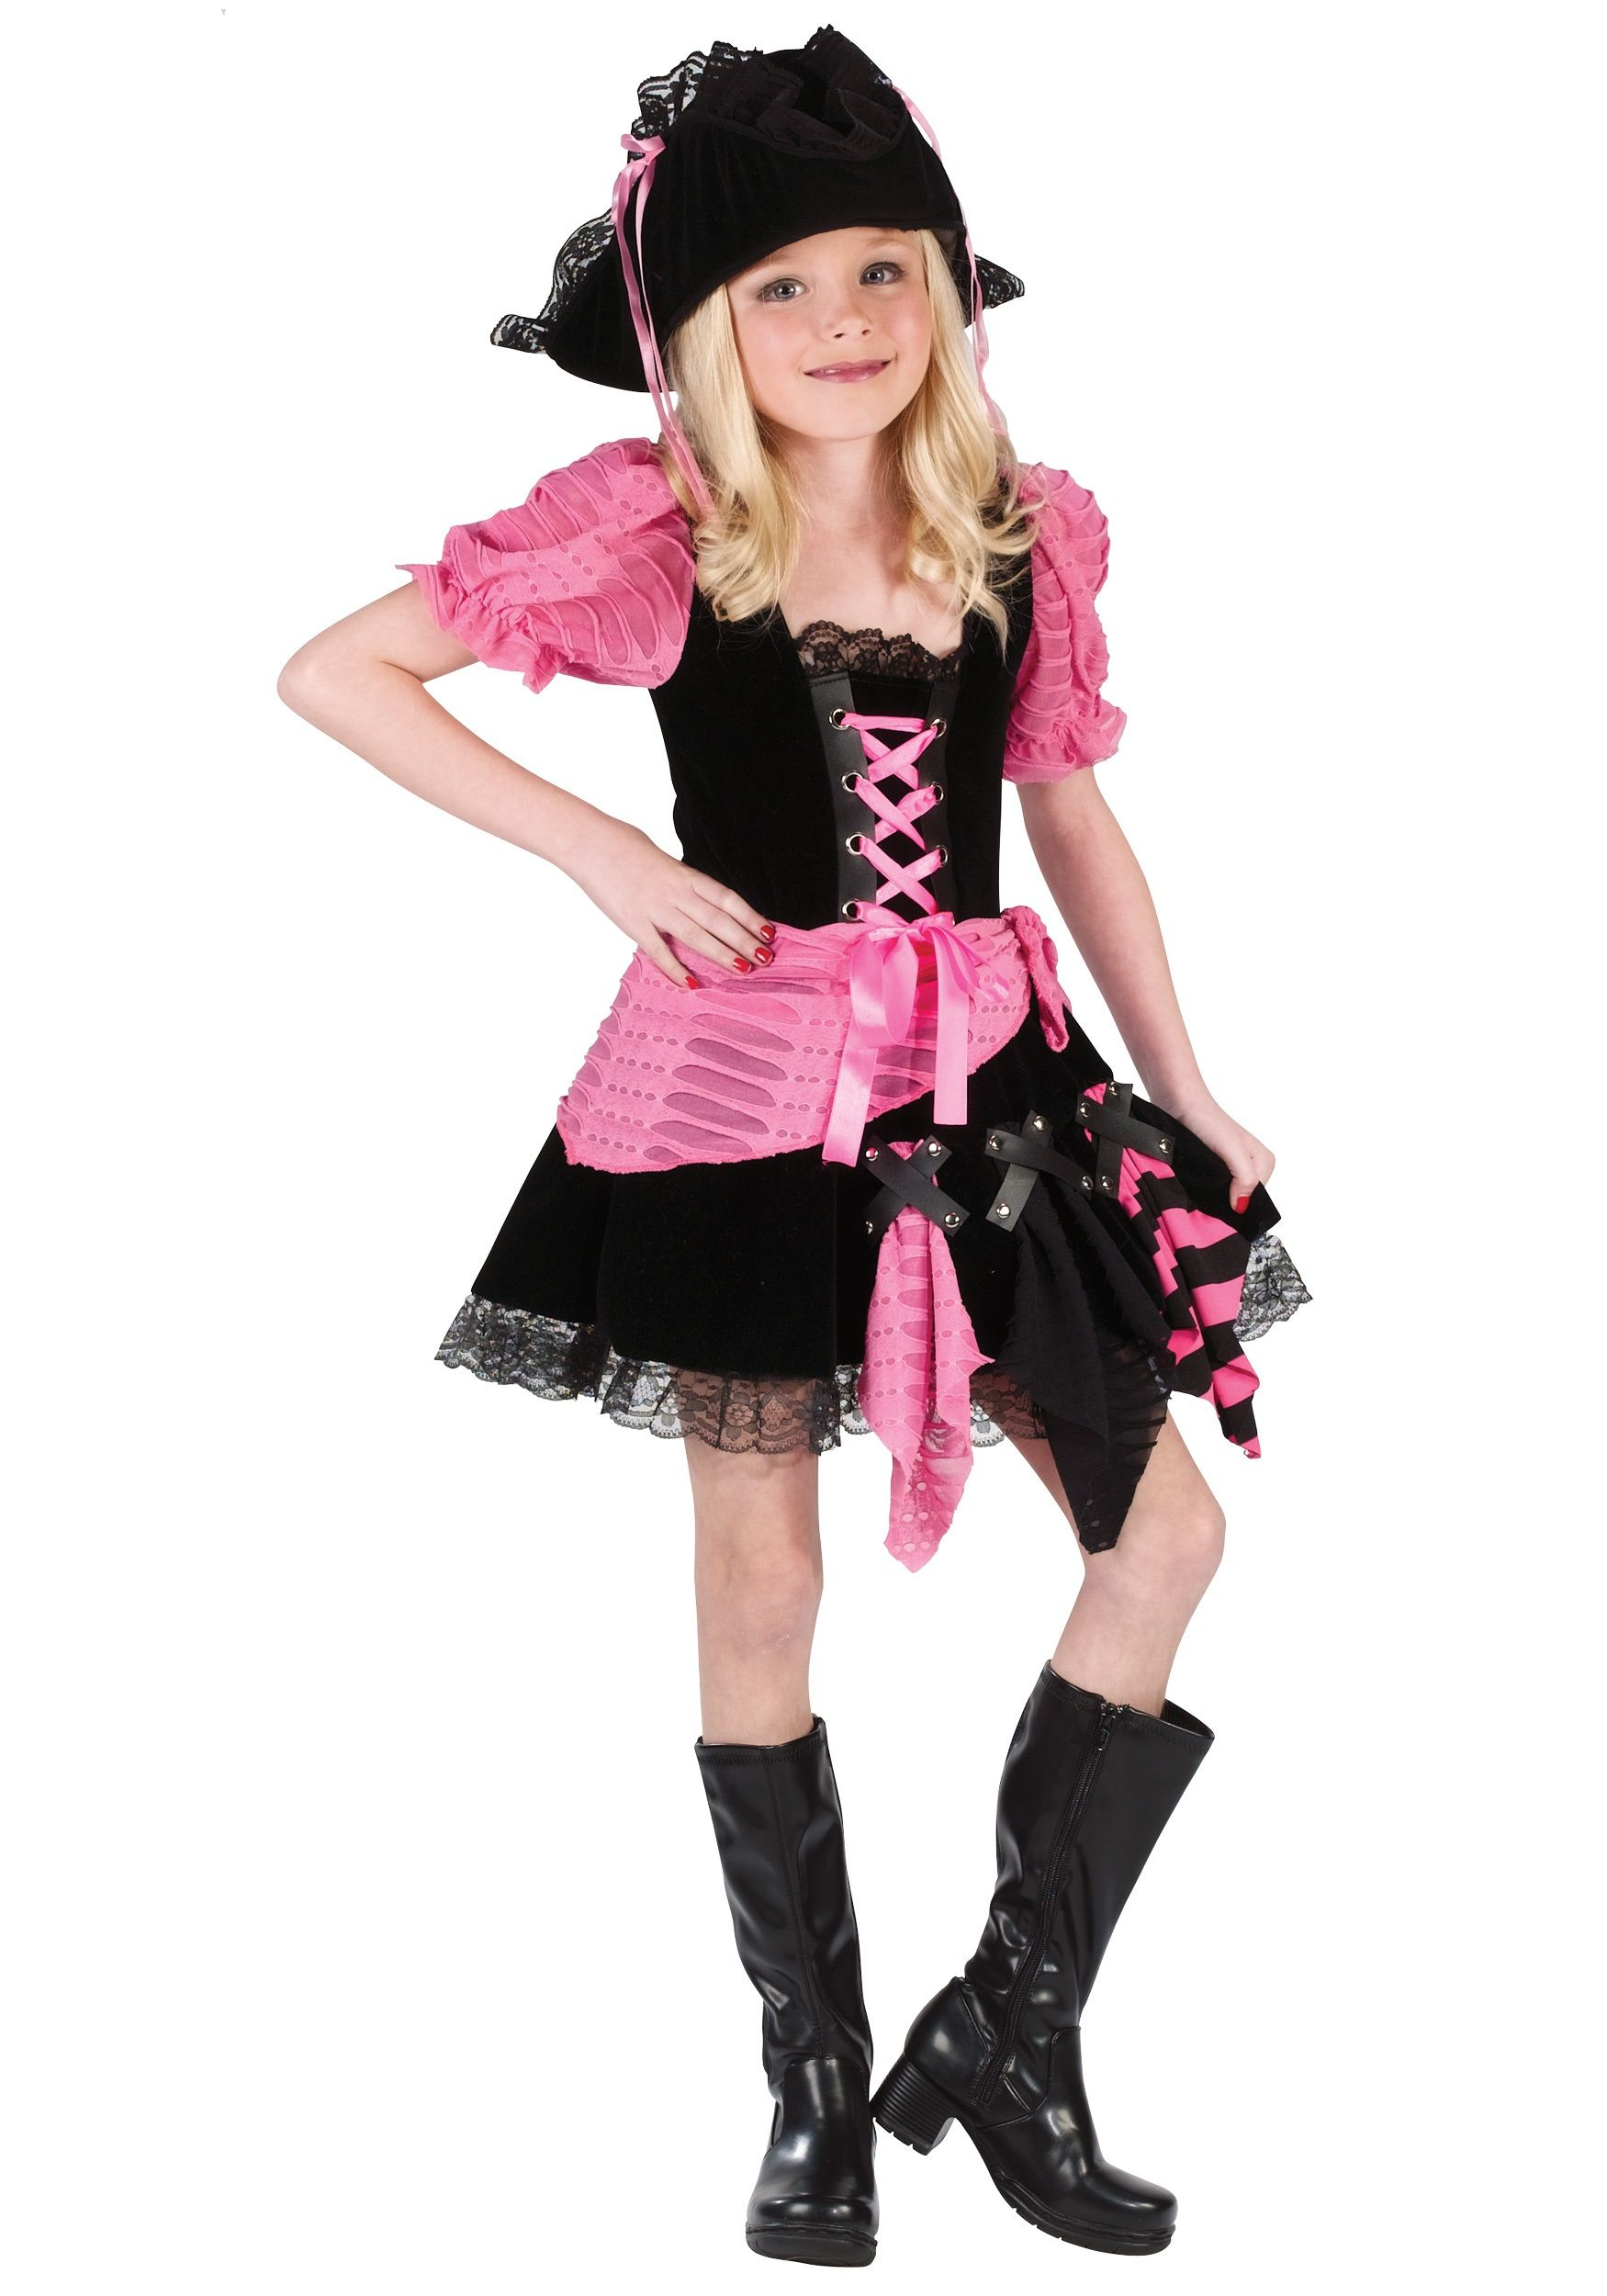 Kid's Pink Pirate Costume | Pirate costume girl, Costumes and ...